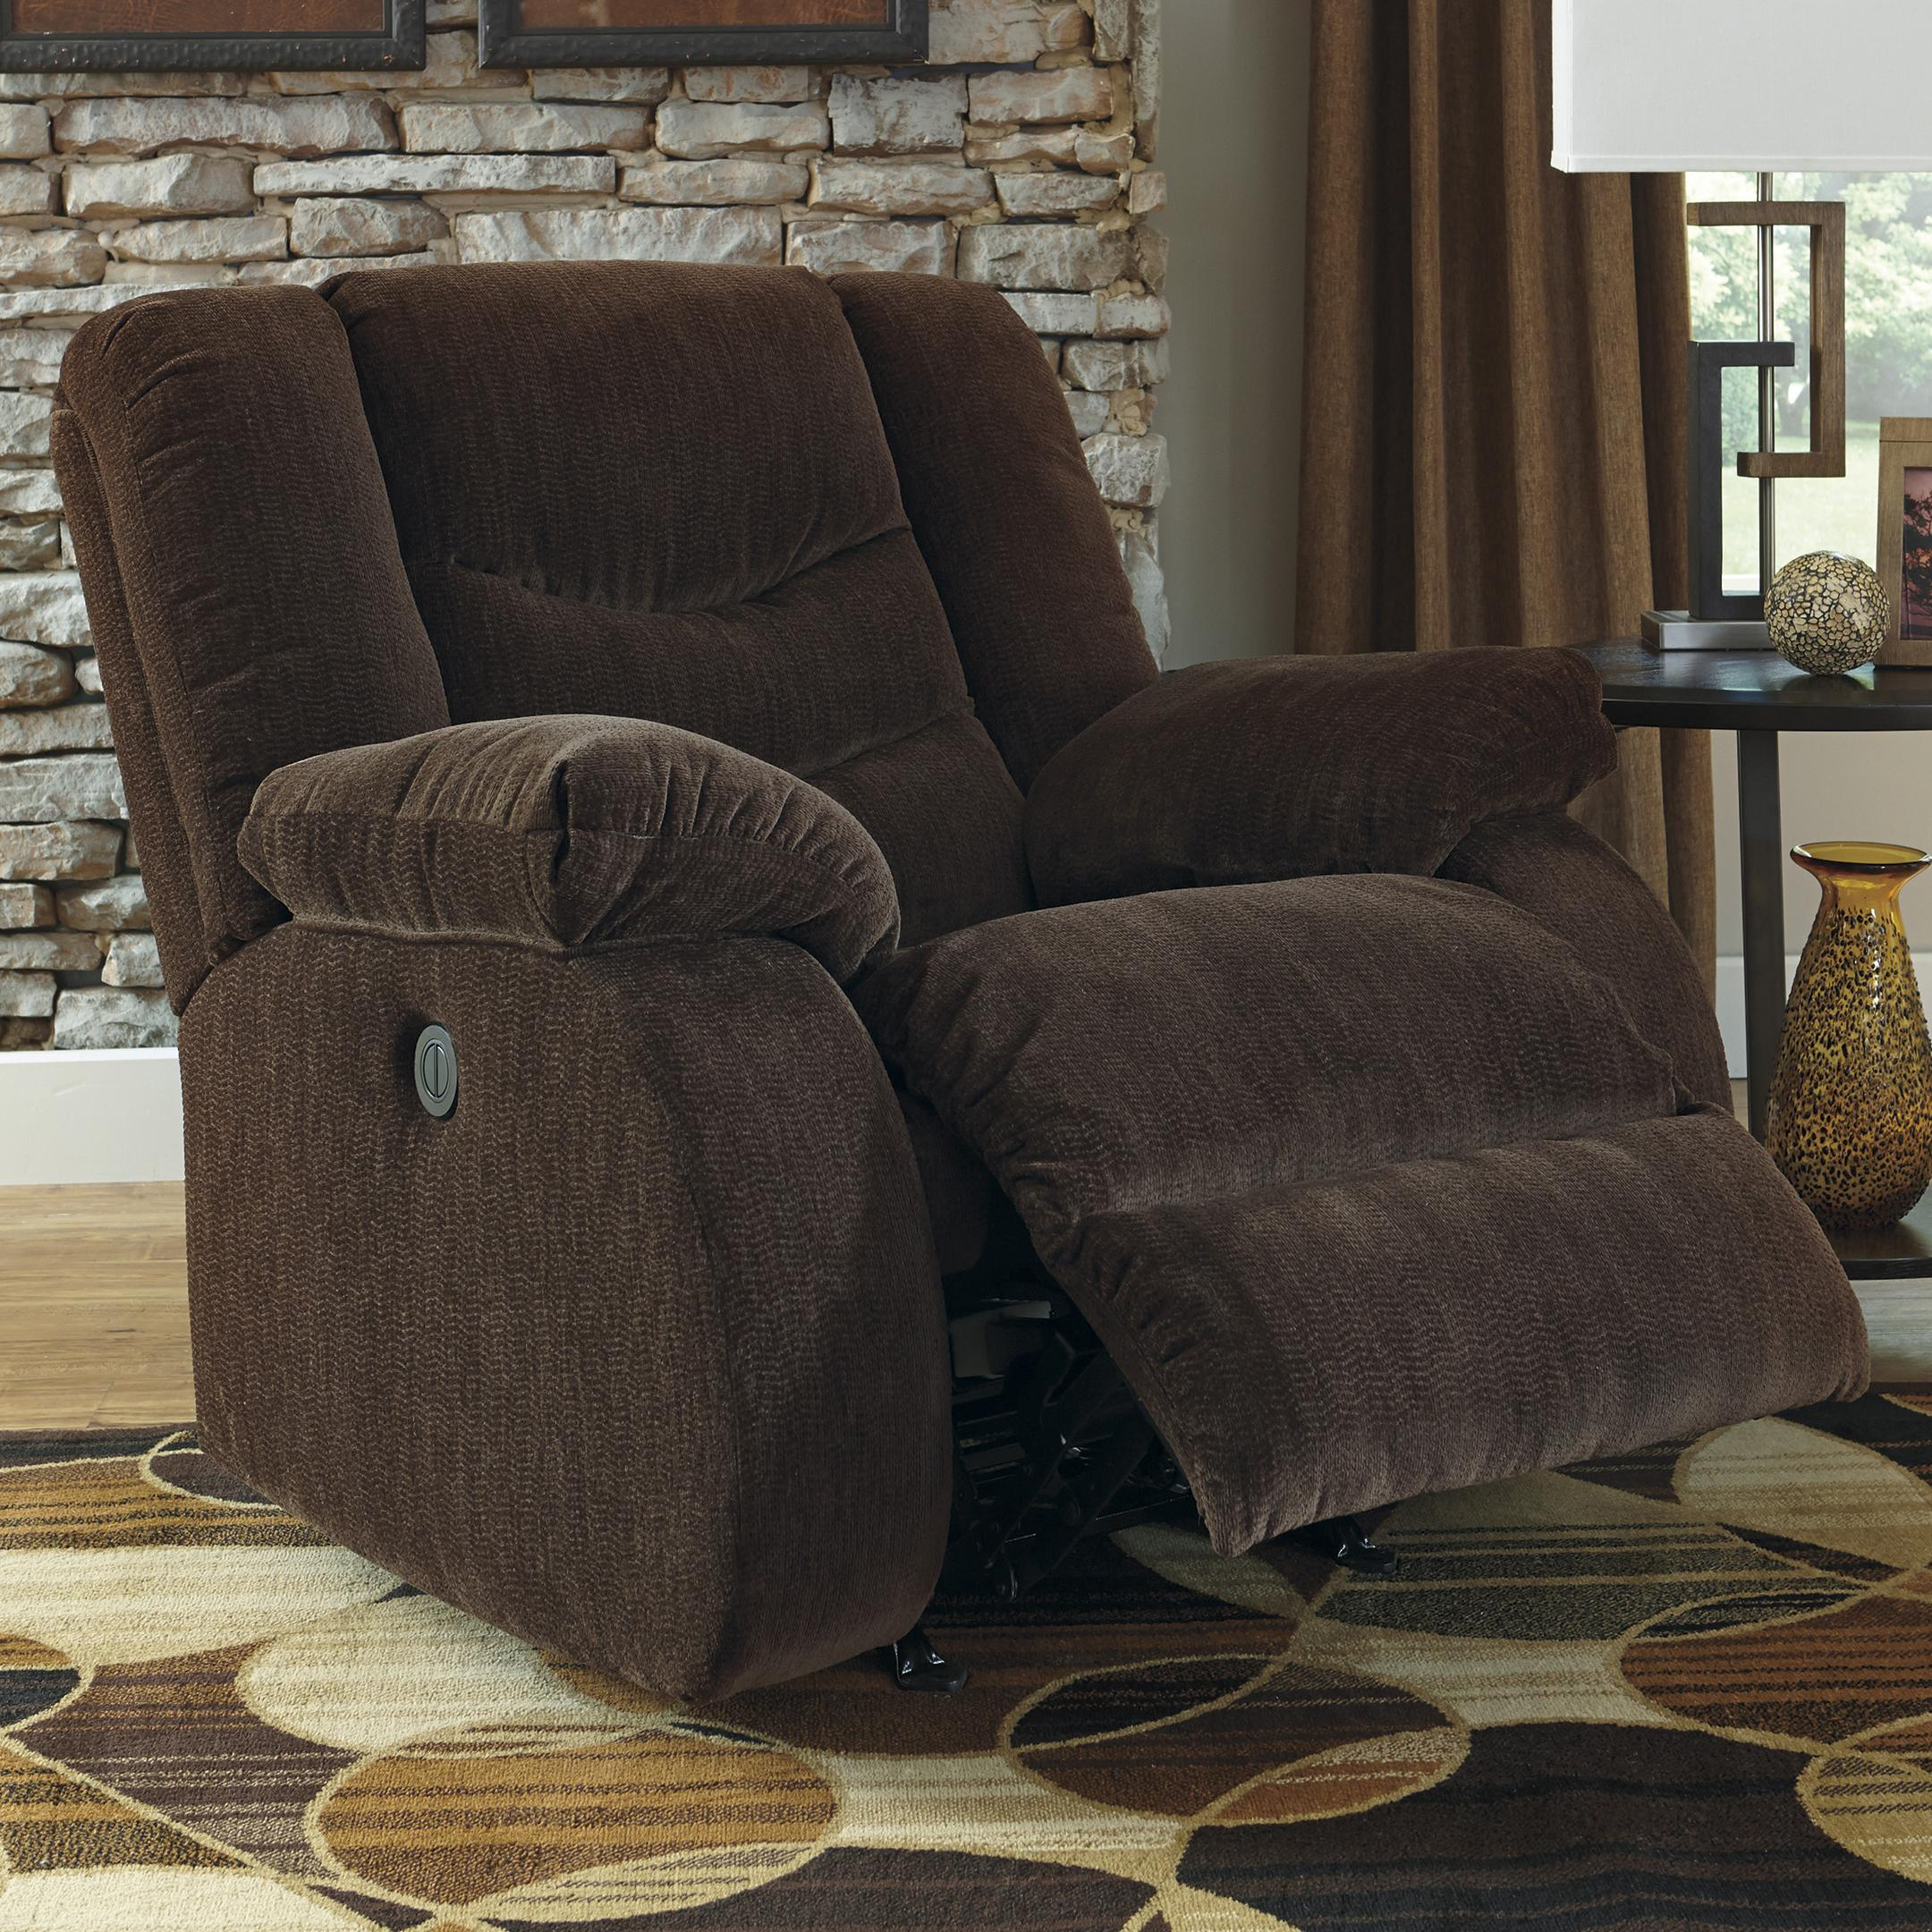 Signature Design by Ashley Garek - Cocoa Rocker Recliner - Item Number: 9200325